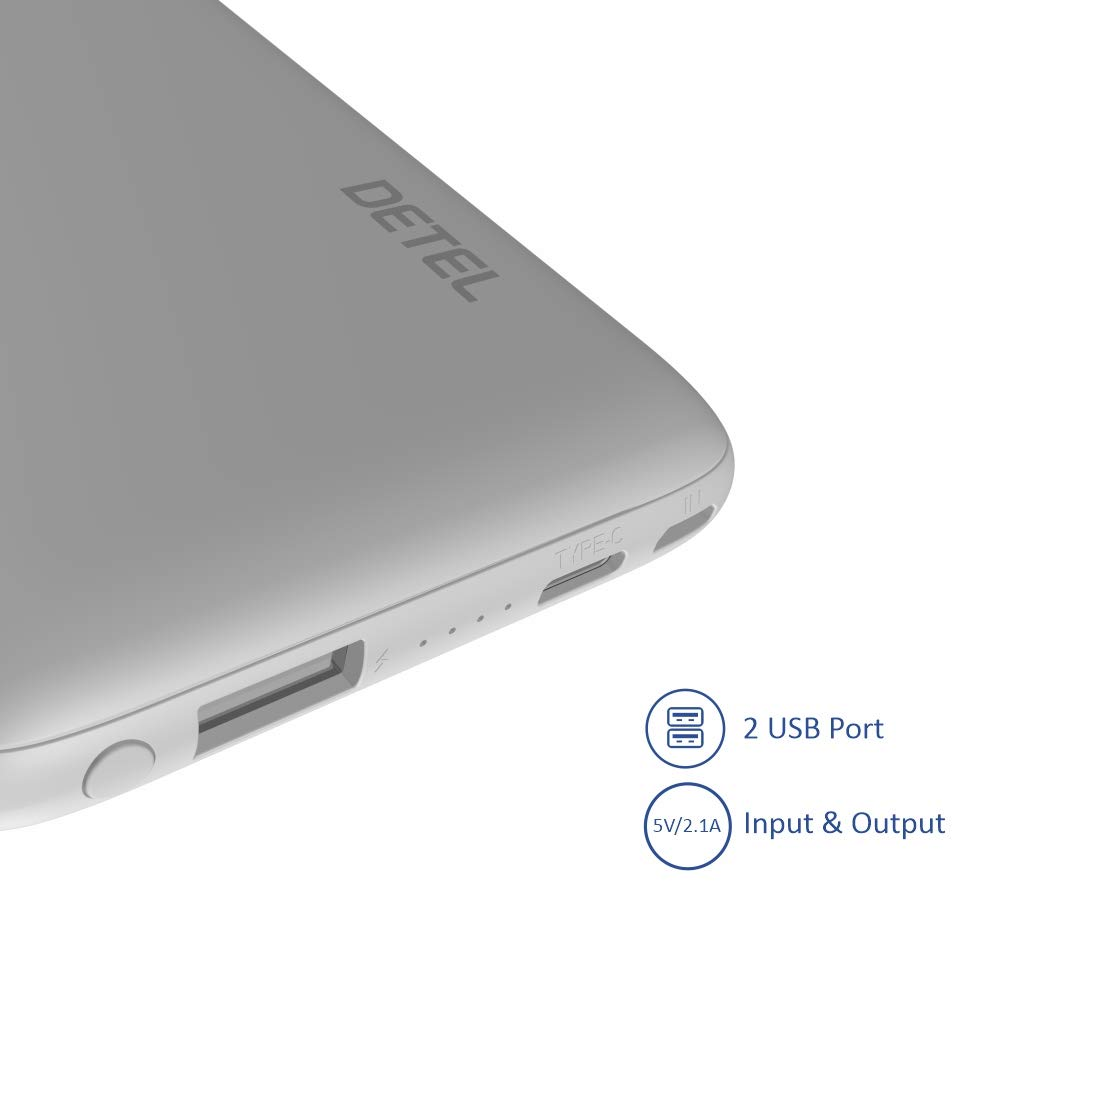 Detel 10000mAh Pro Lithium Polymer Power Bank with Built in Type-C and Micro USB Cable (White)